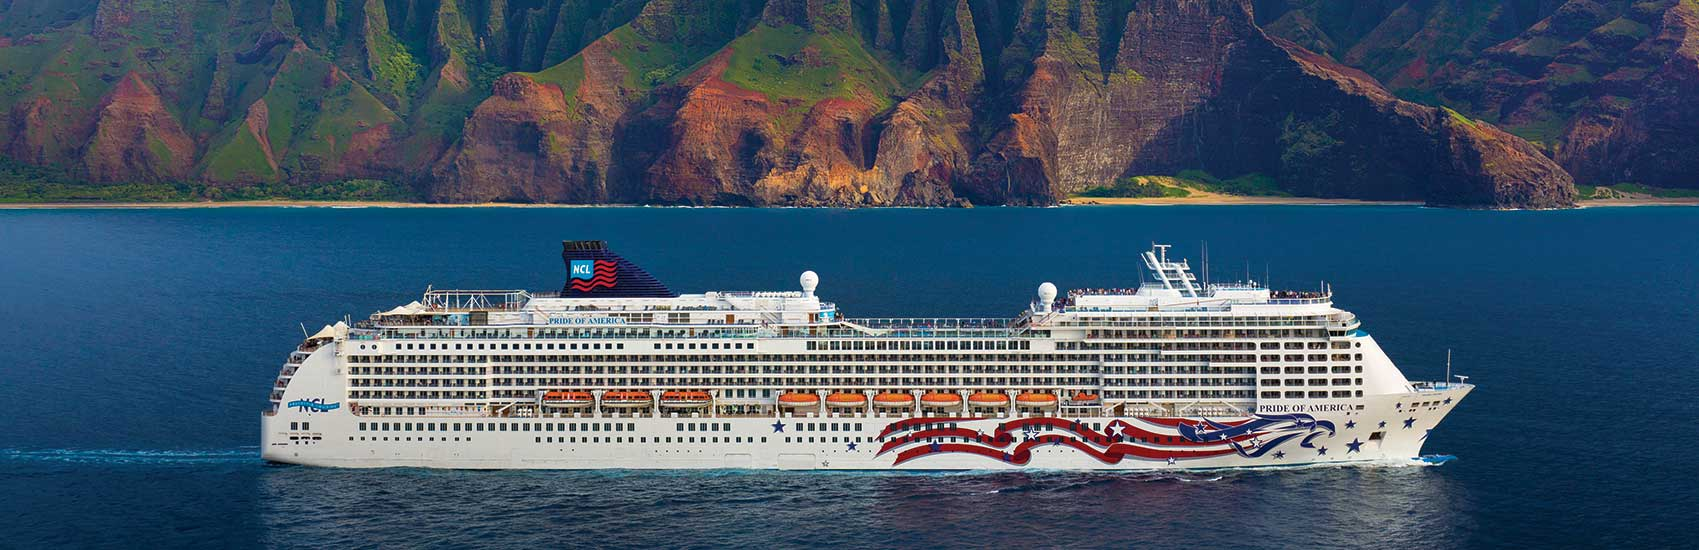 Free at Sea in Hawaii with Norwegian Cruise Line! 0